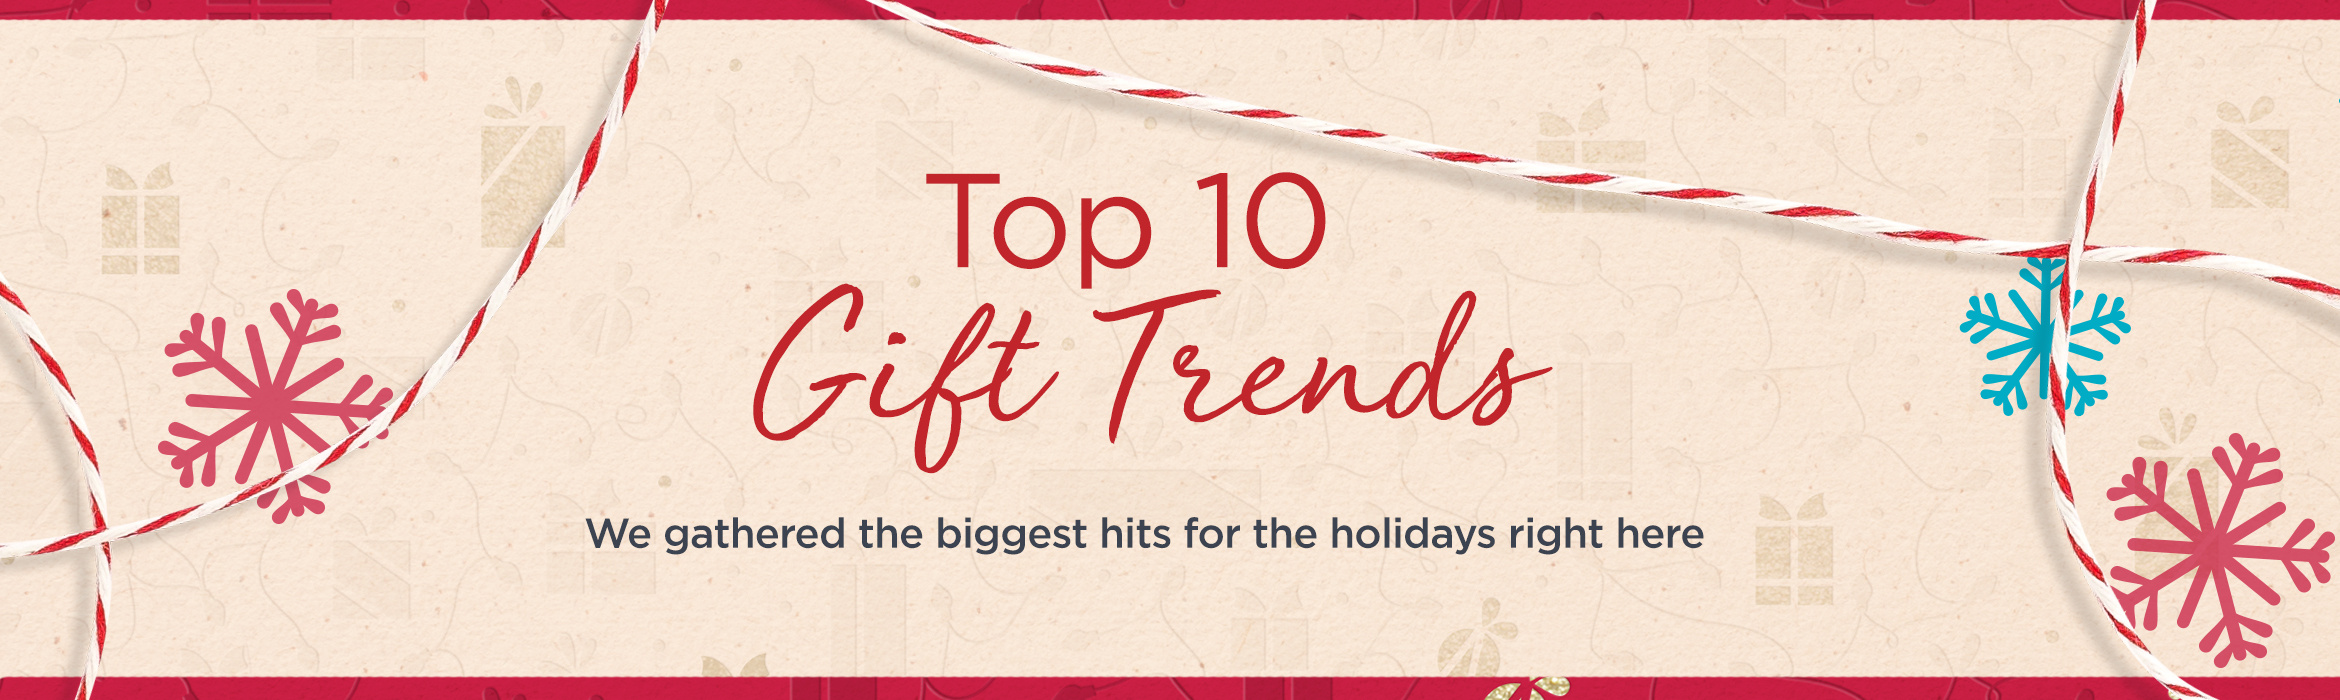 Top 10 Gift Trends  We gathered the biggest hits for the holidays right here